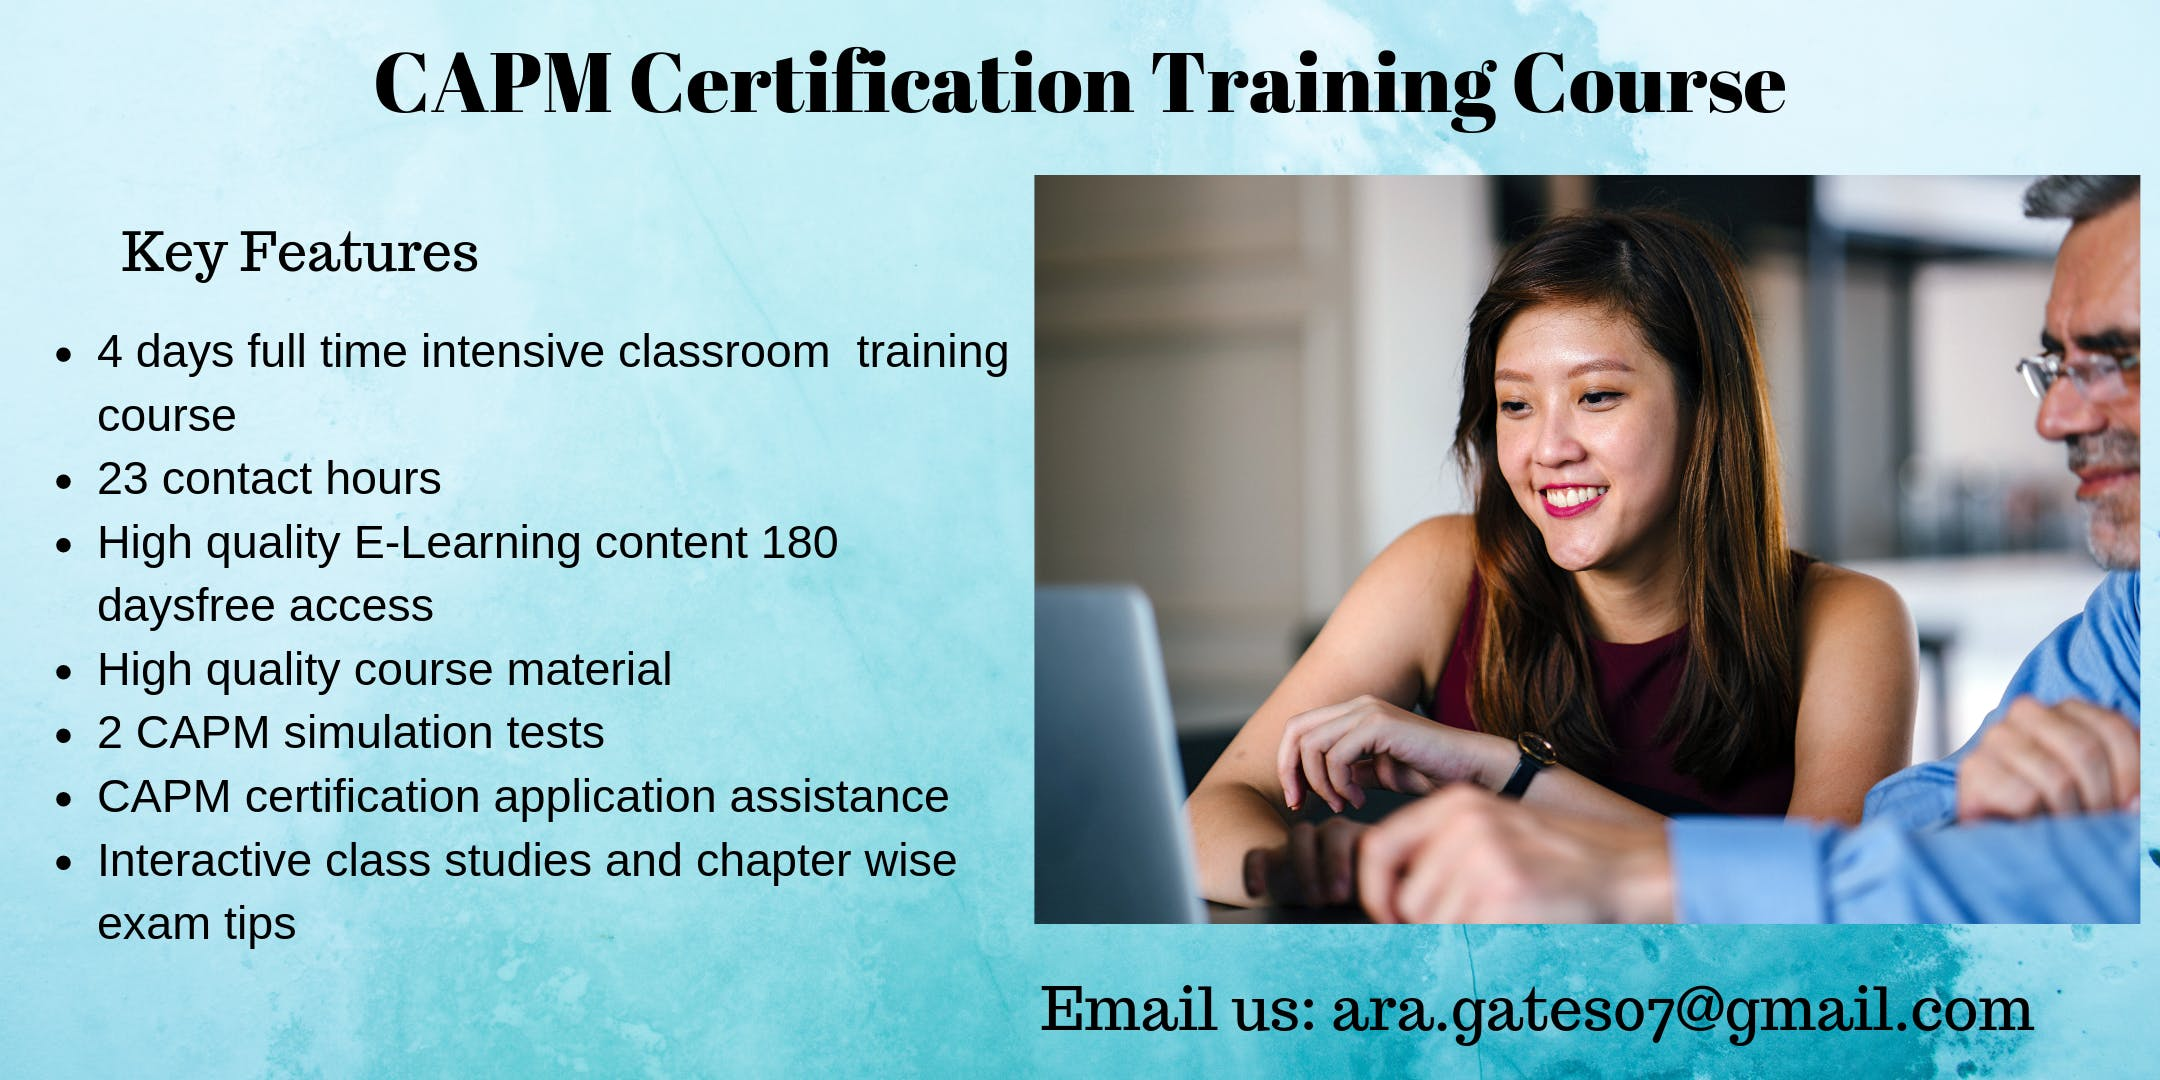 CAPM Training Course in Houston, TX